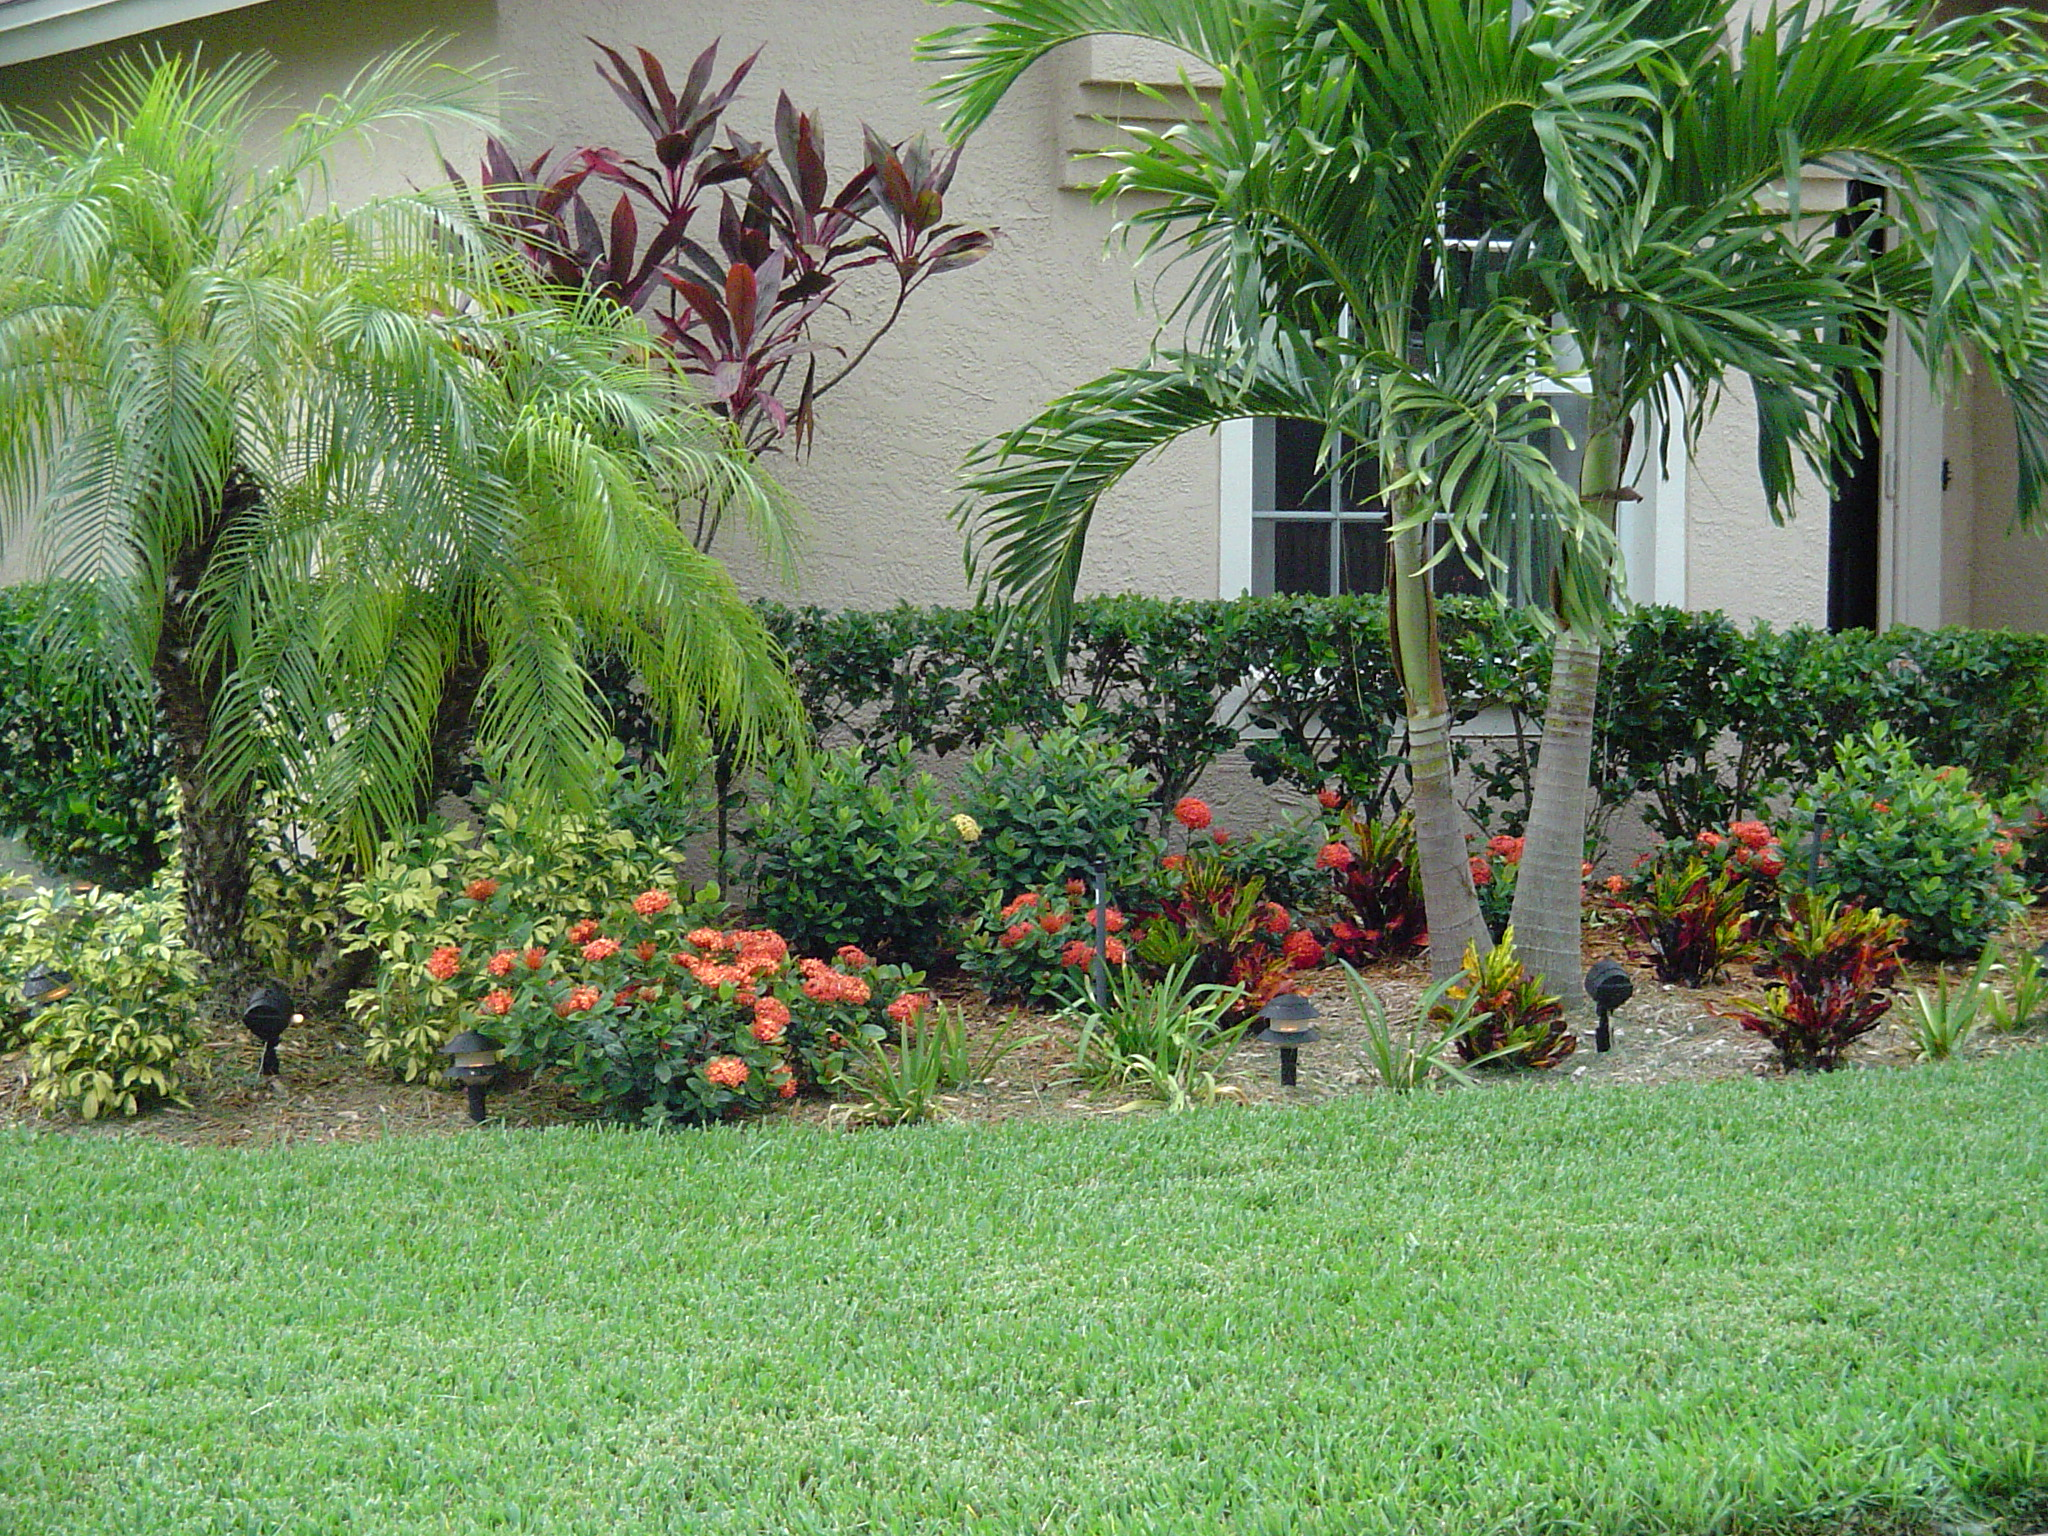 Kasa landscaping Pictures of landscaping ideas